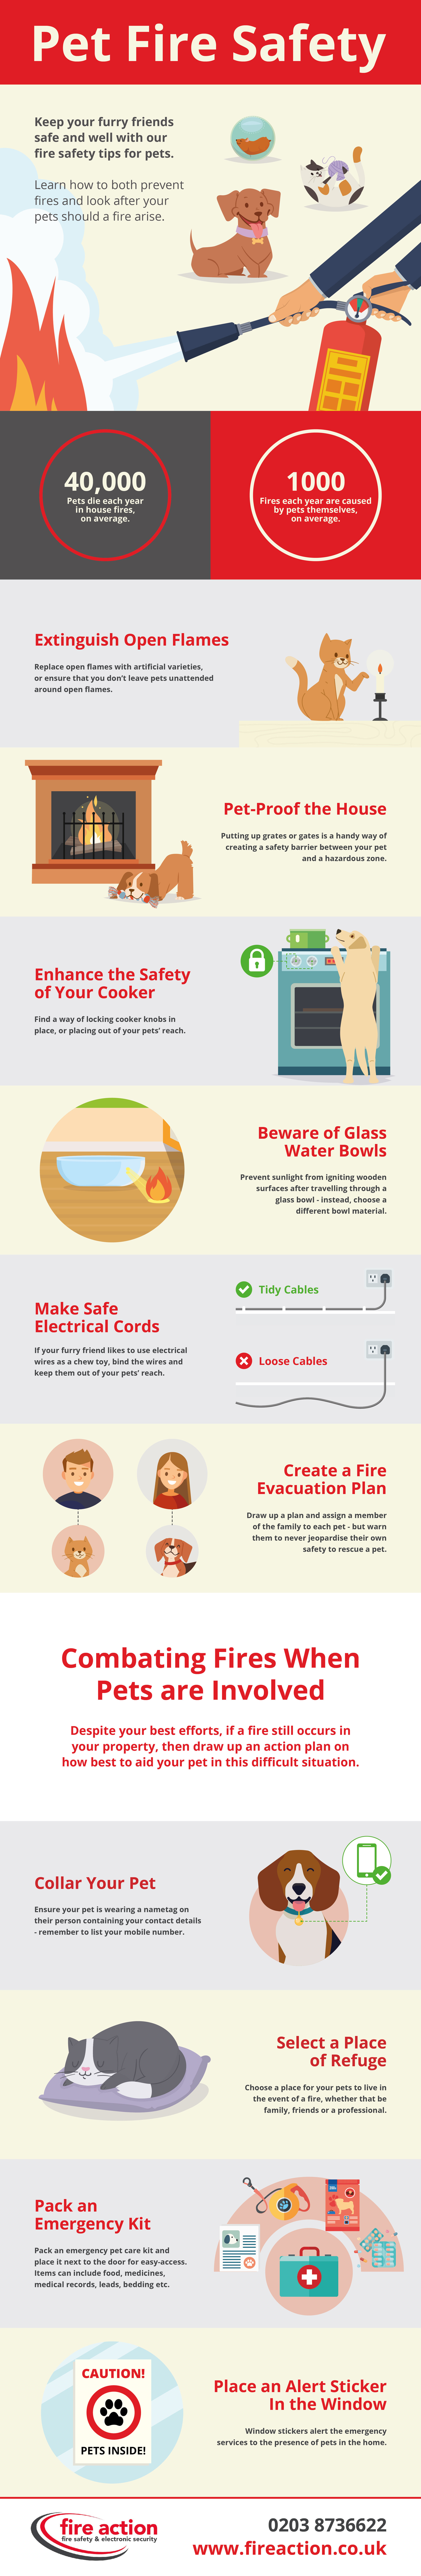 Pet Fire Safety: Fire safety Tips for Pet Owners [Infographic] width=